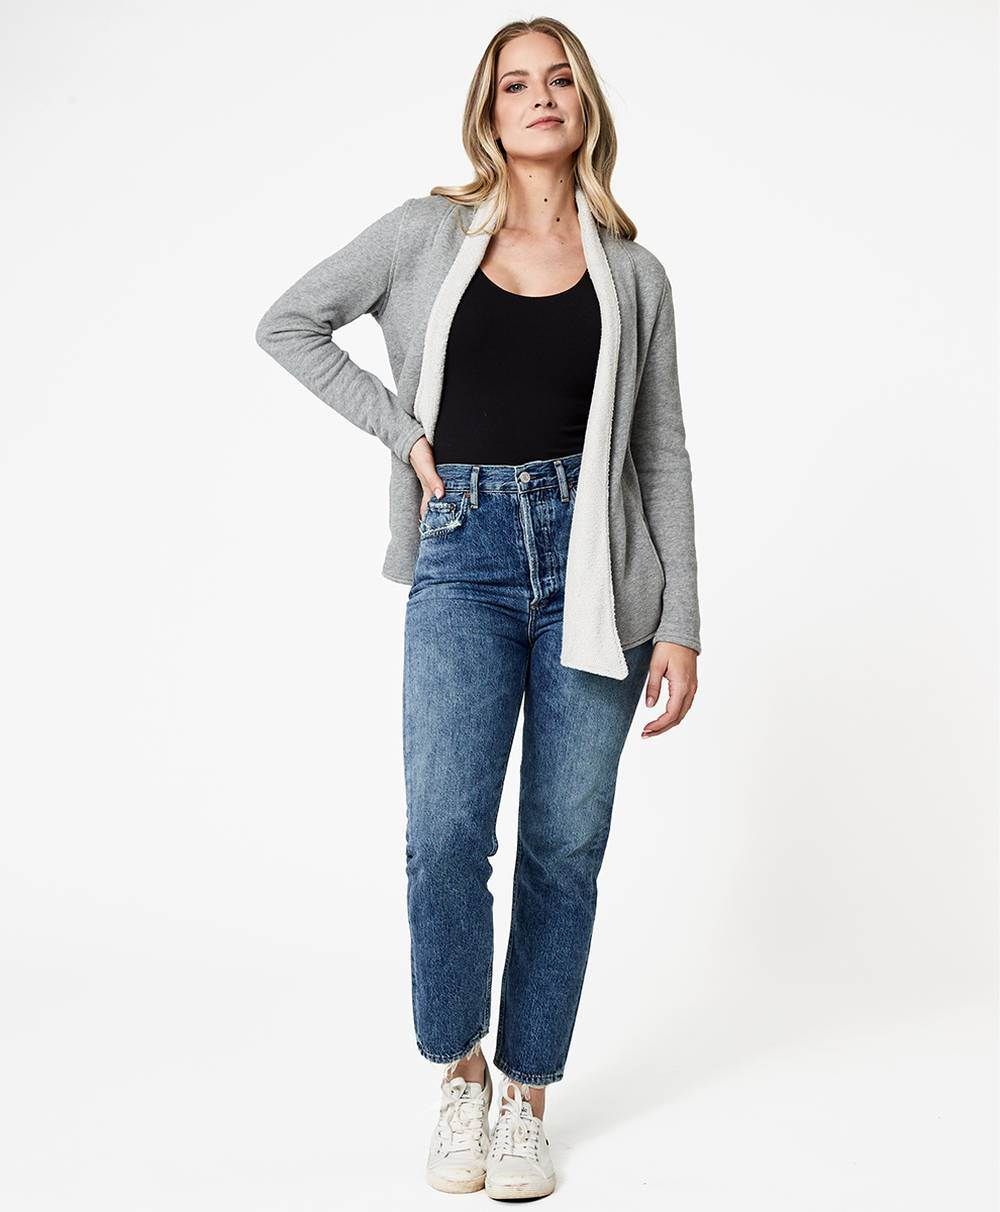 pact timeless cozy cardigan sweaters